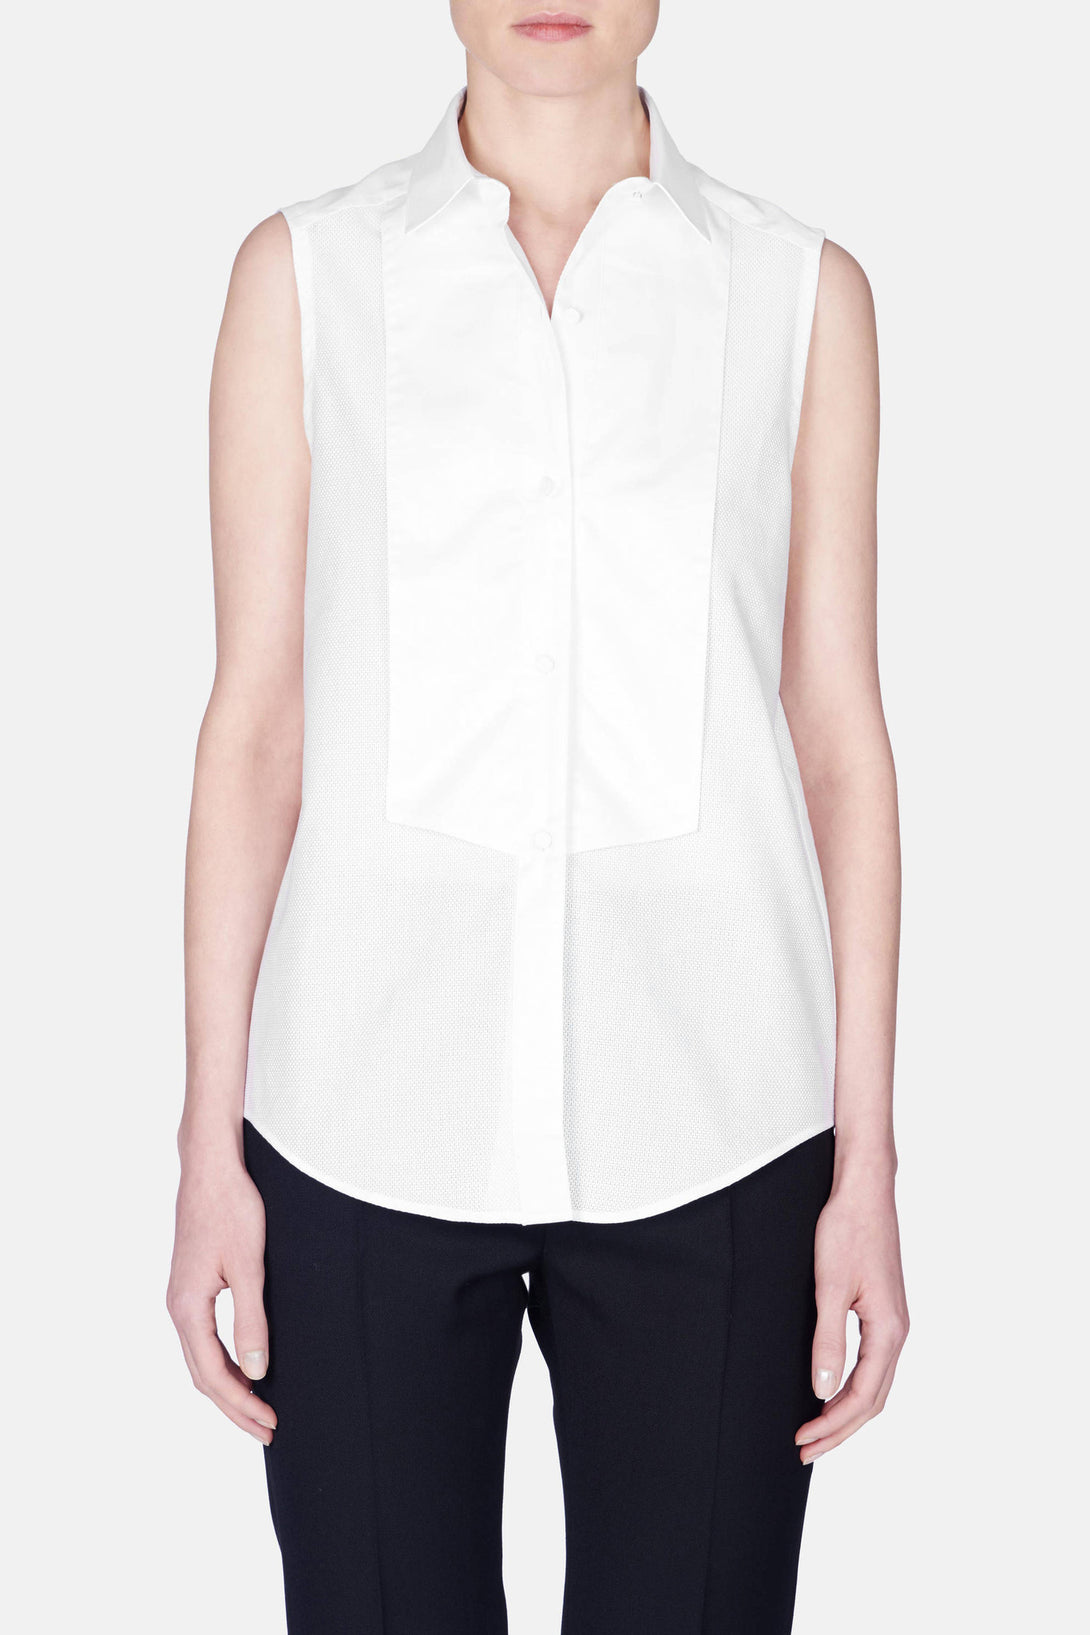 Lola Sleeveless Shirt - Blanc